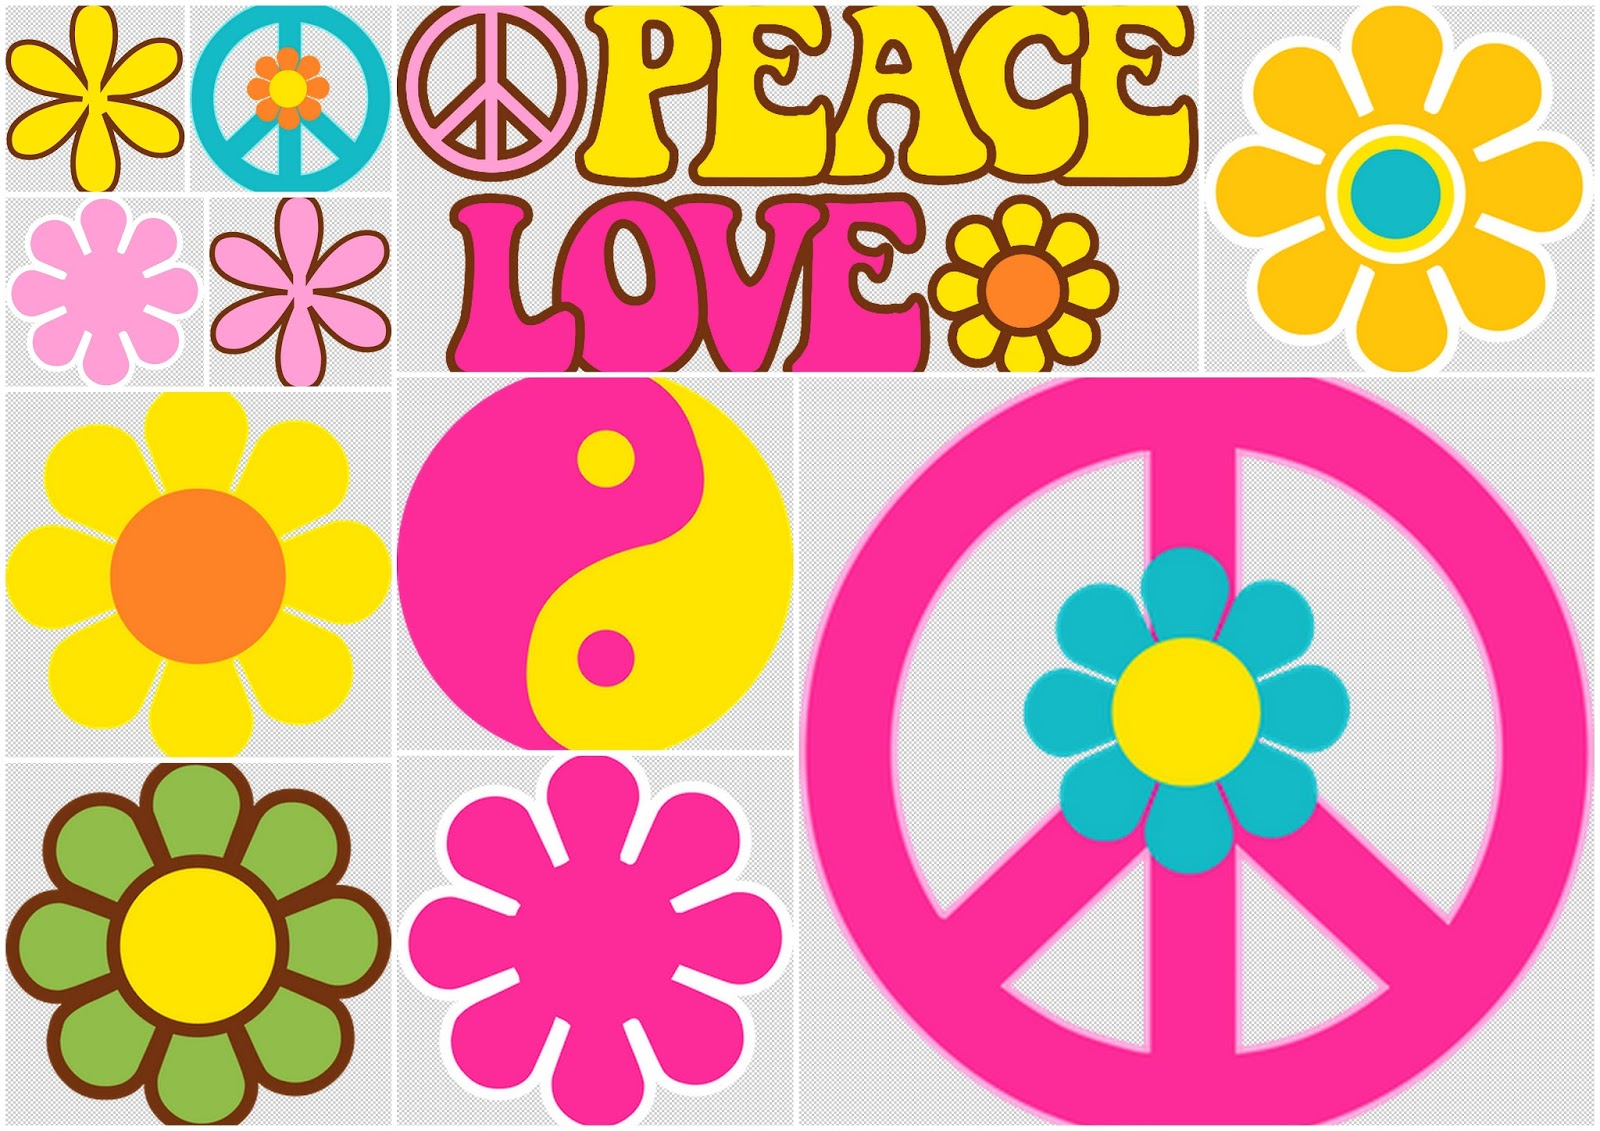 Flowers and Symbols of the Hippy Party Clip Art. | Oh My Fiesta ...